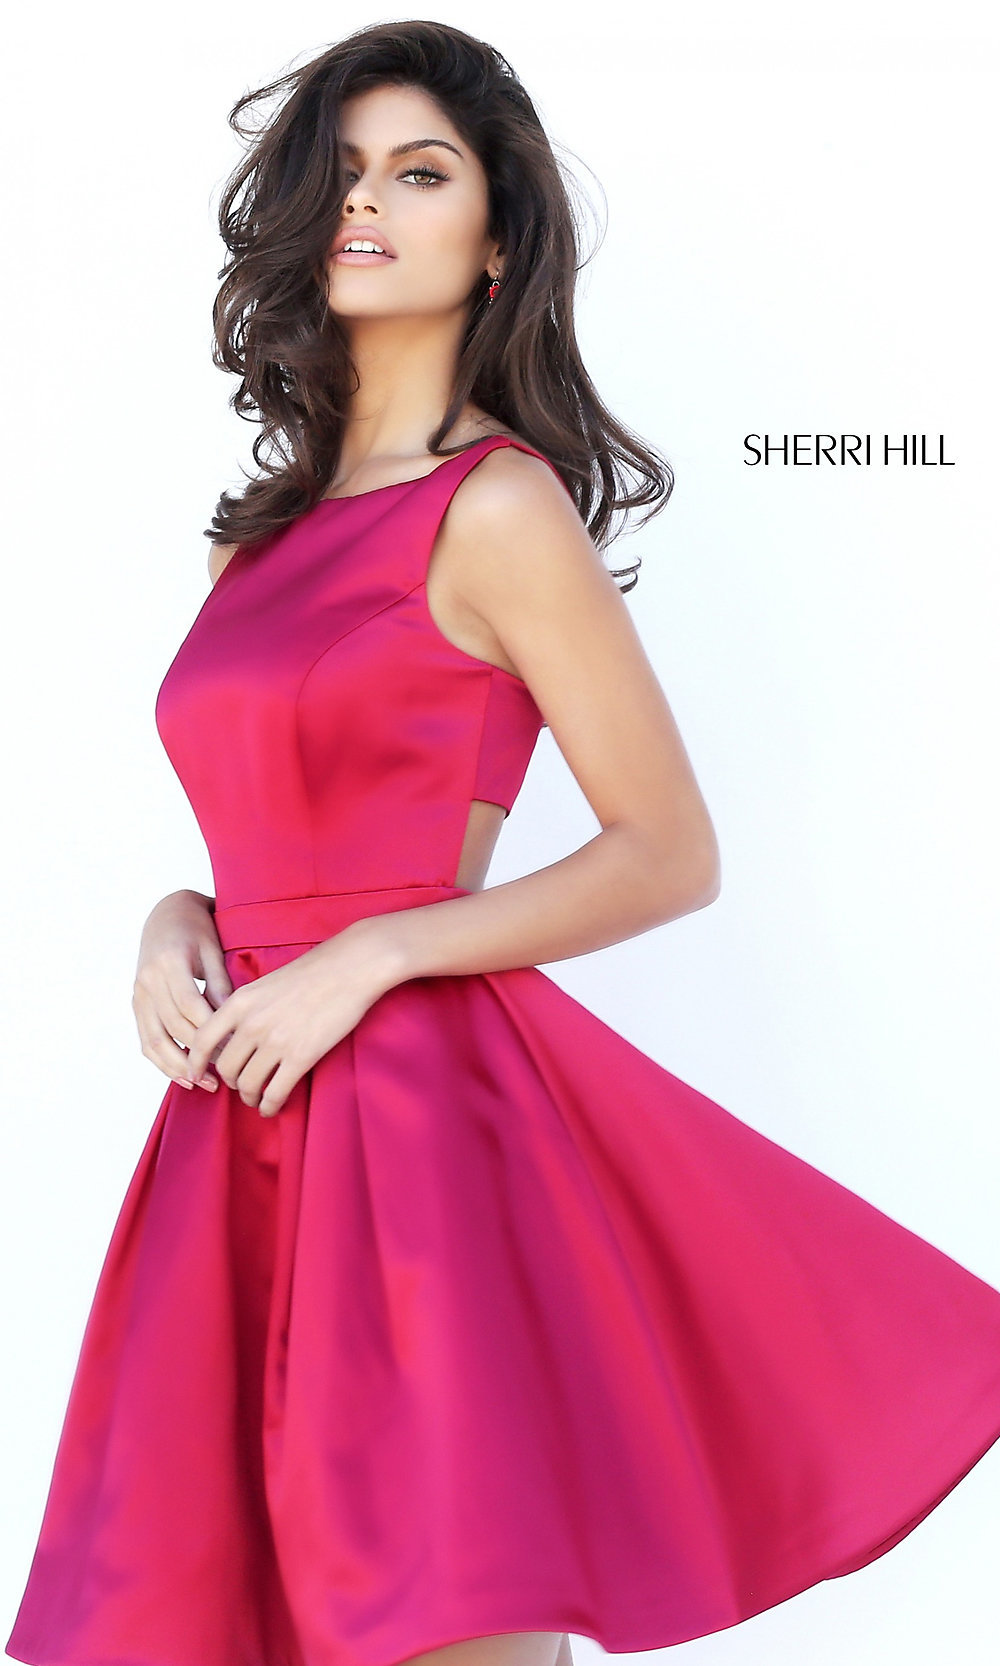 How To Become A Sherri Hill Model Solution For How To For Dummies